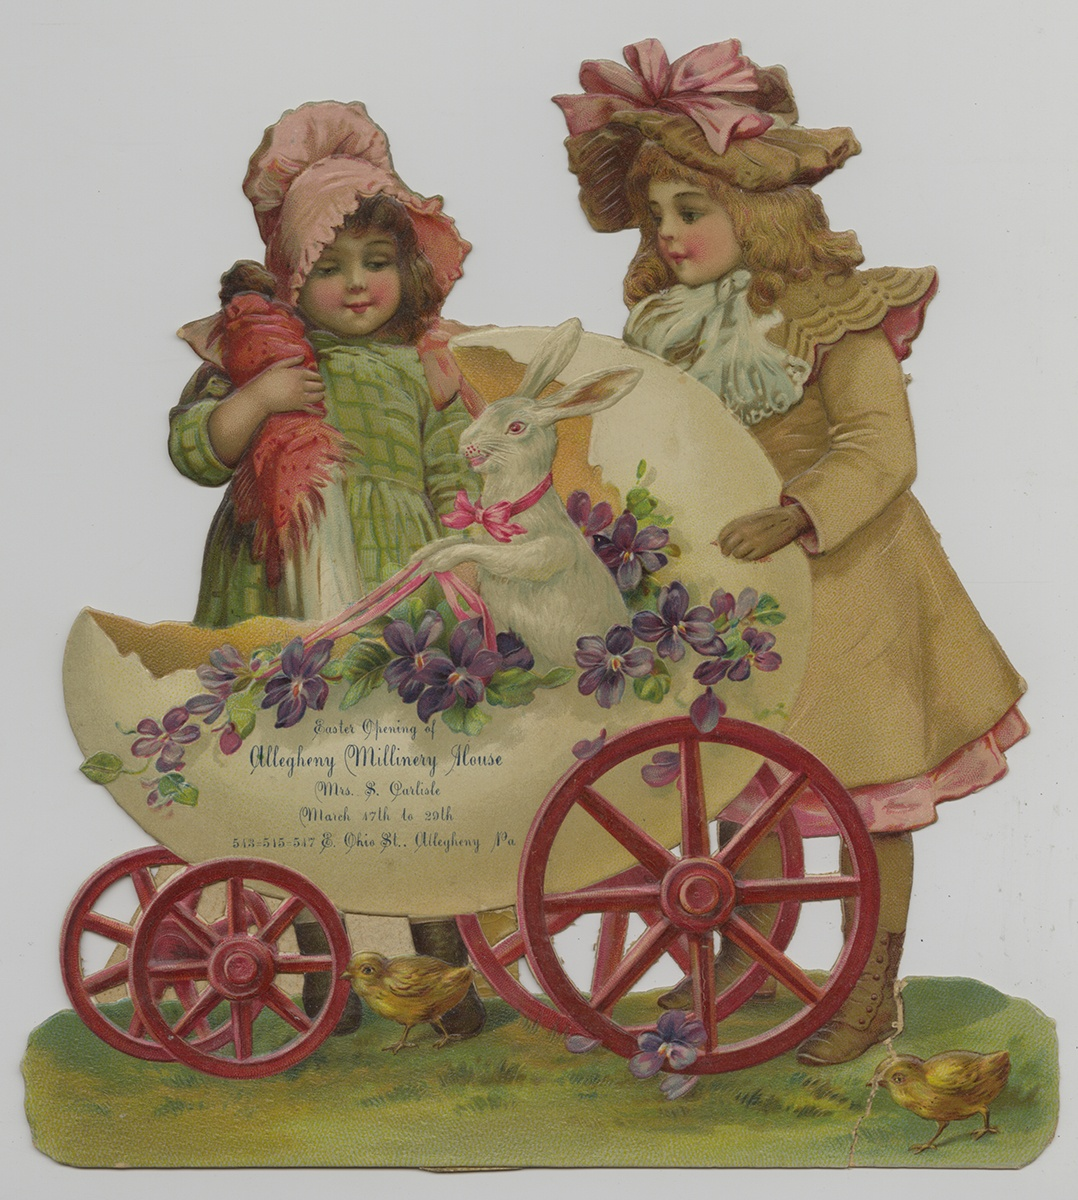 Easter advertising card from the Allegheny Millinery House, c. 1903.